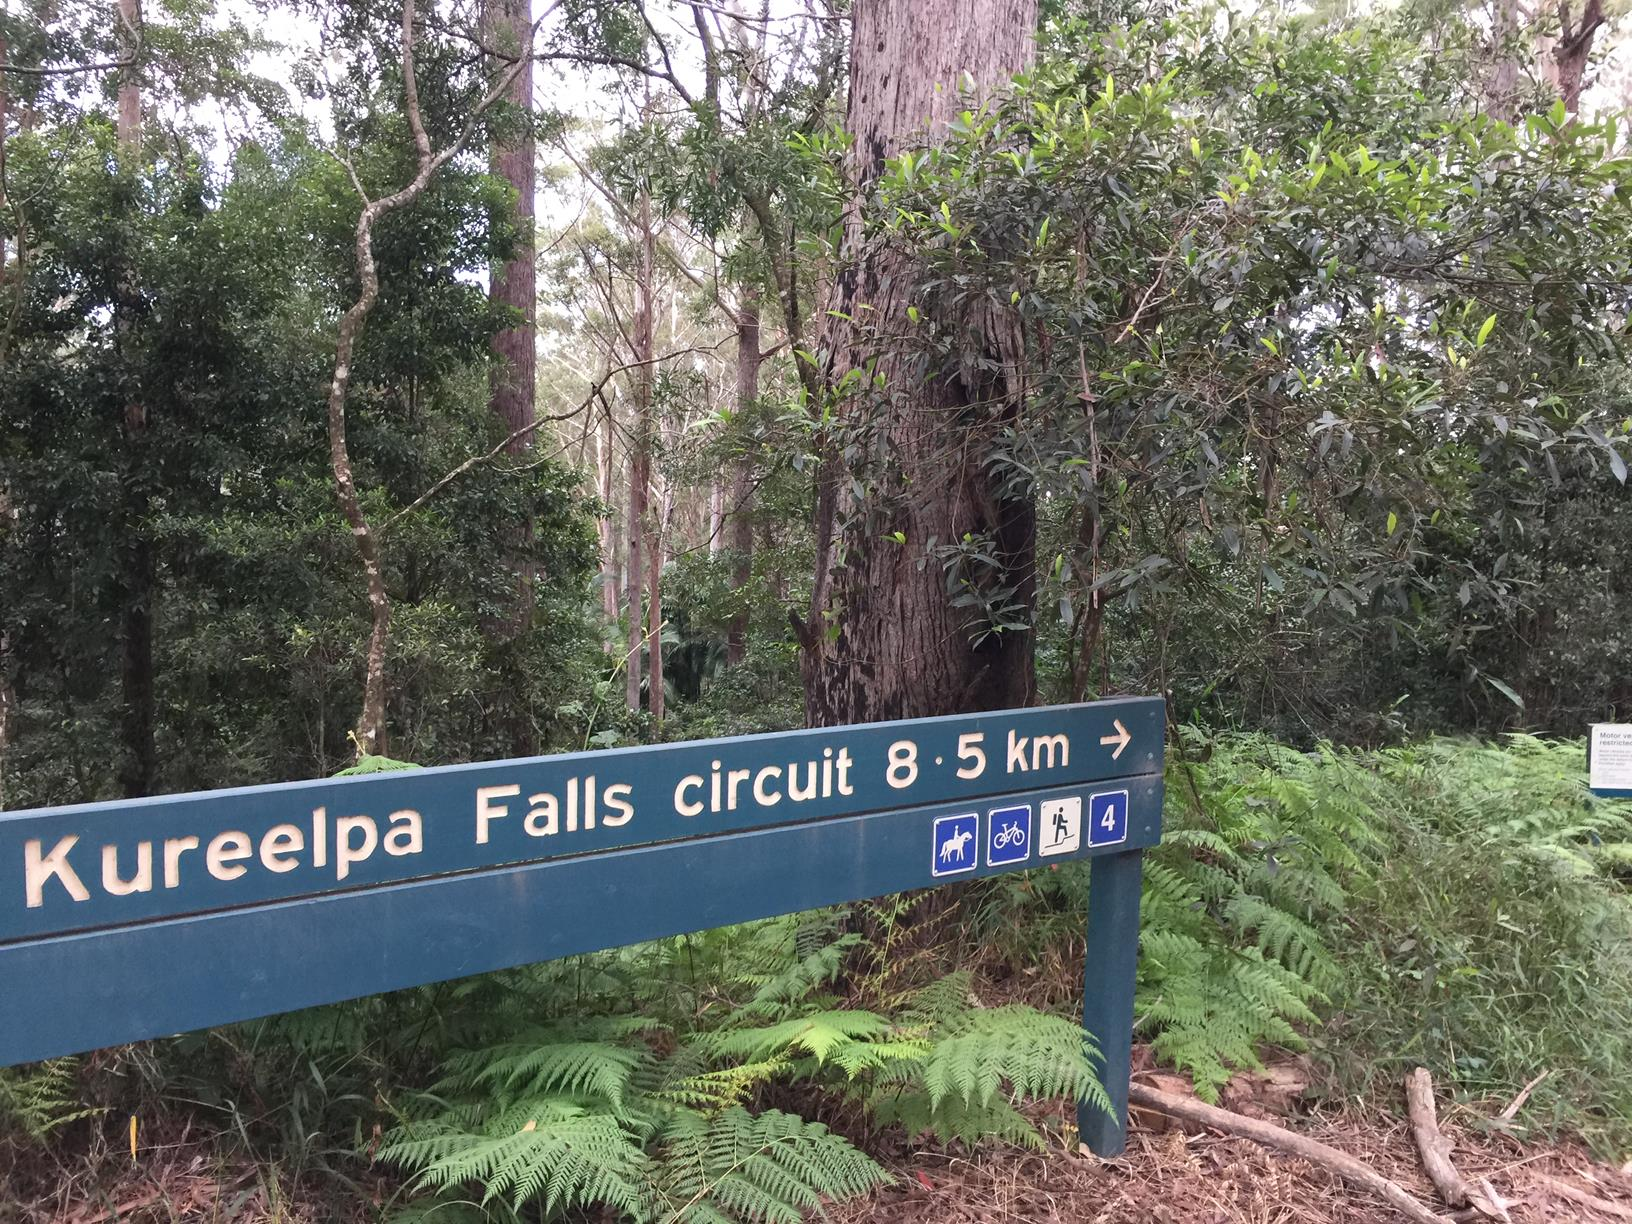 Trail Image for Mapleton National Park: Kureelpa Falls Circuit